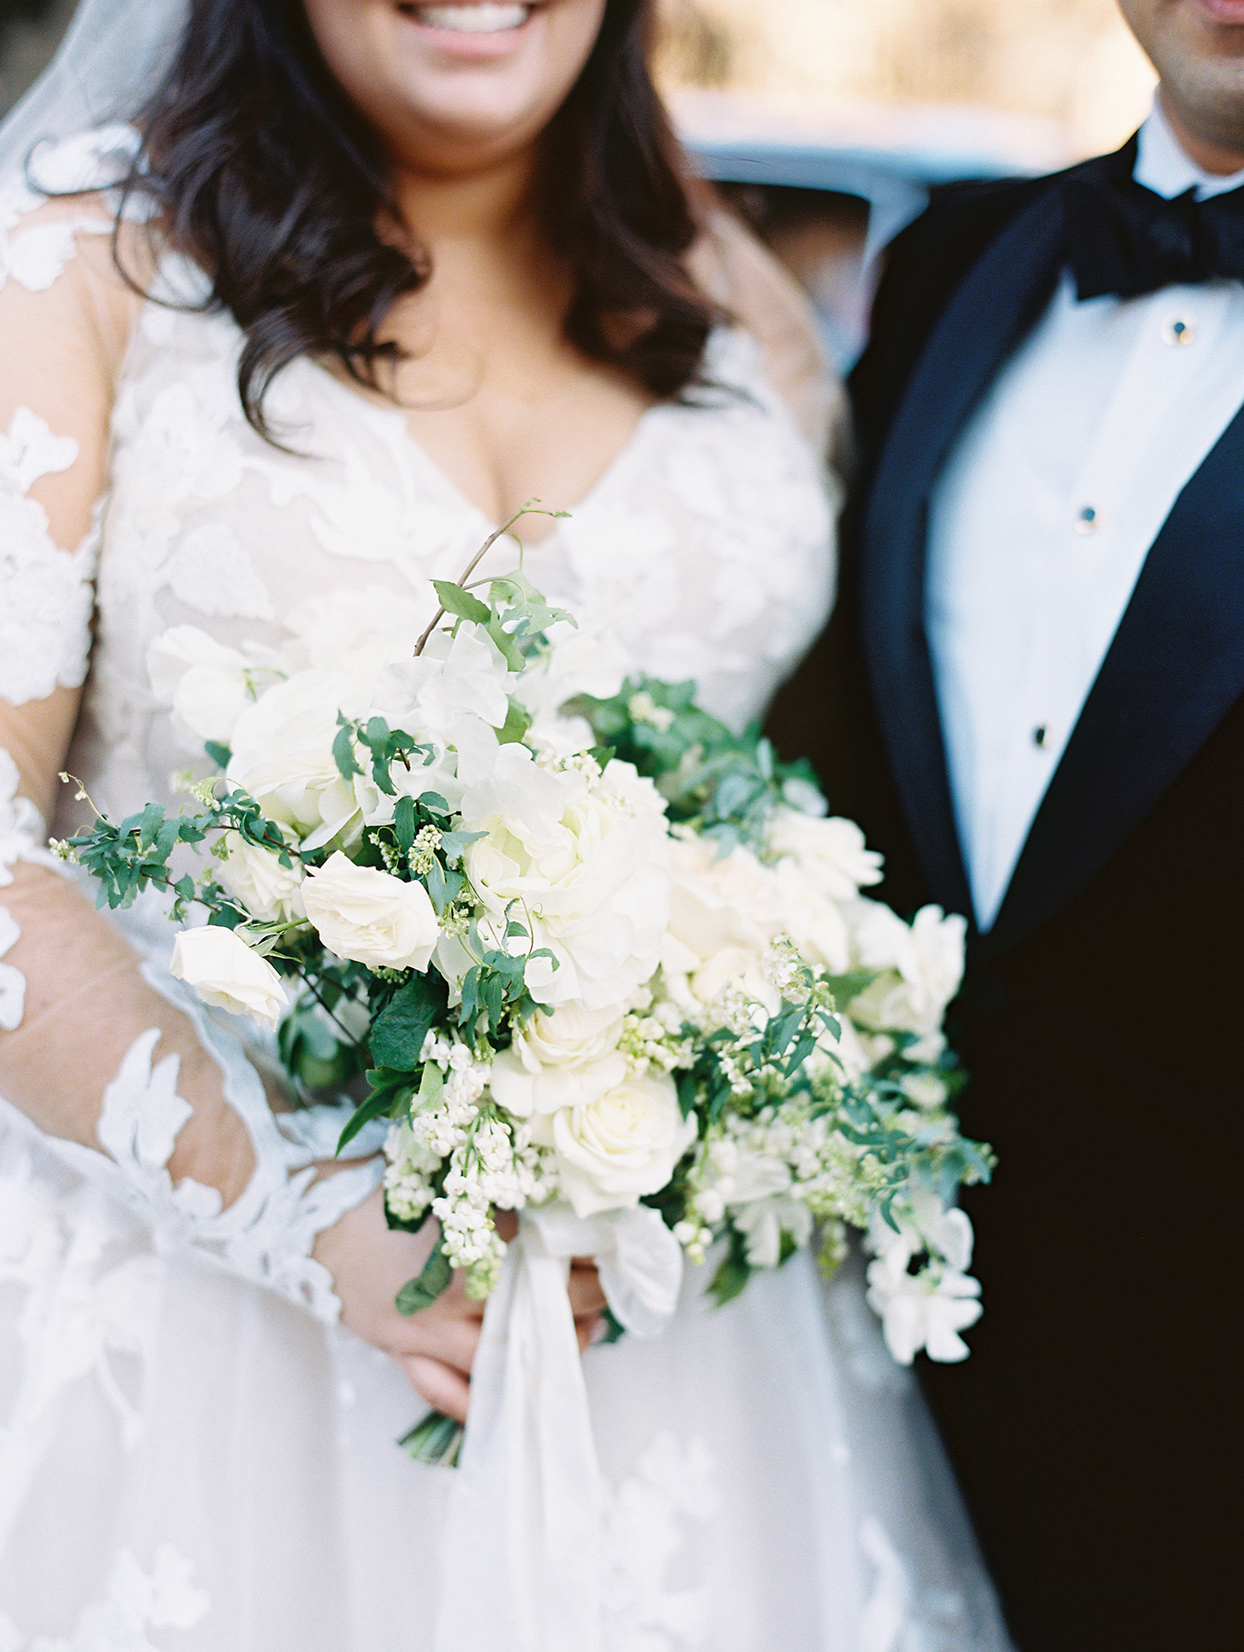 white and green bride's bouquet by Kaleidoscope Floral